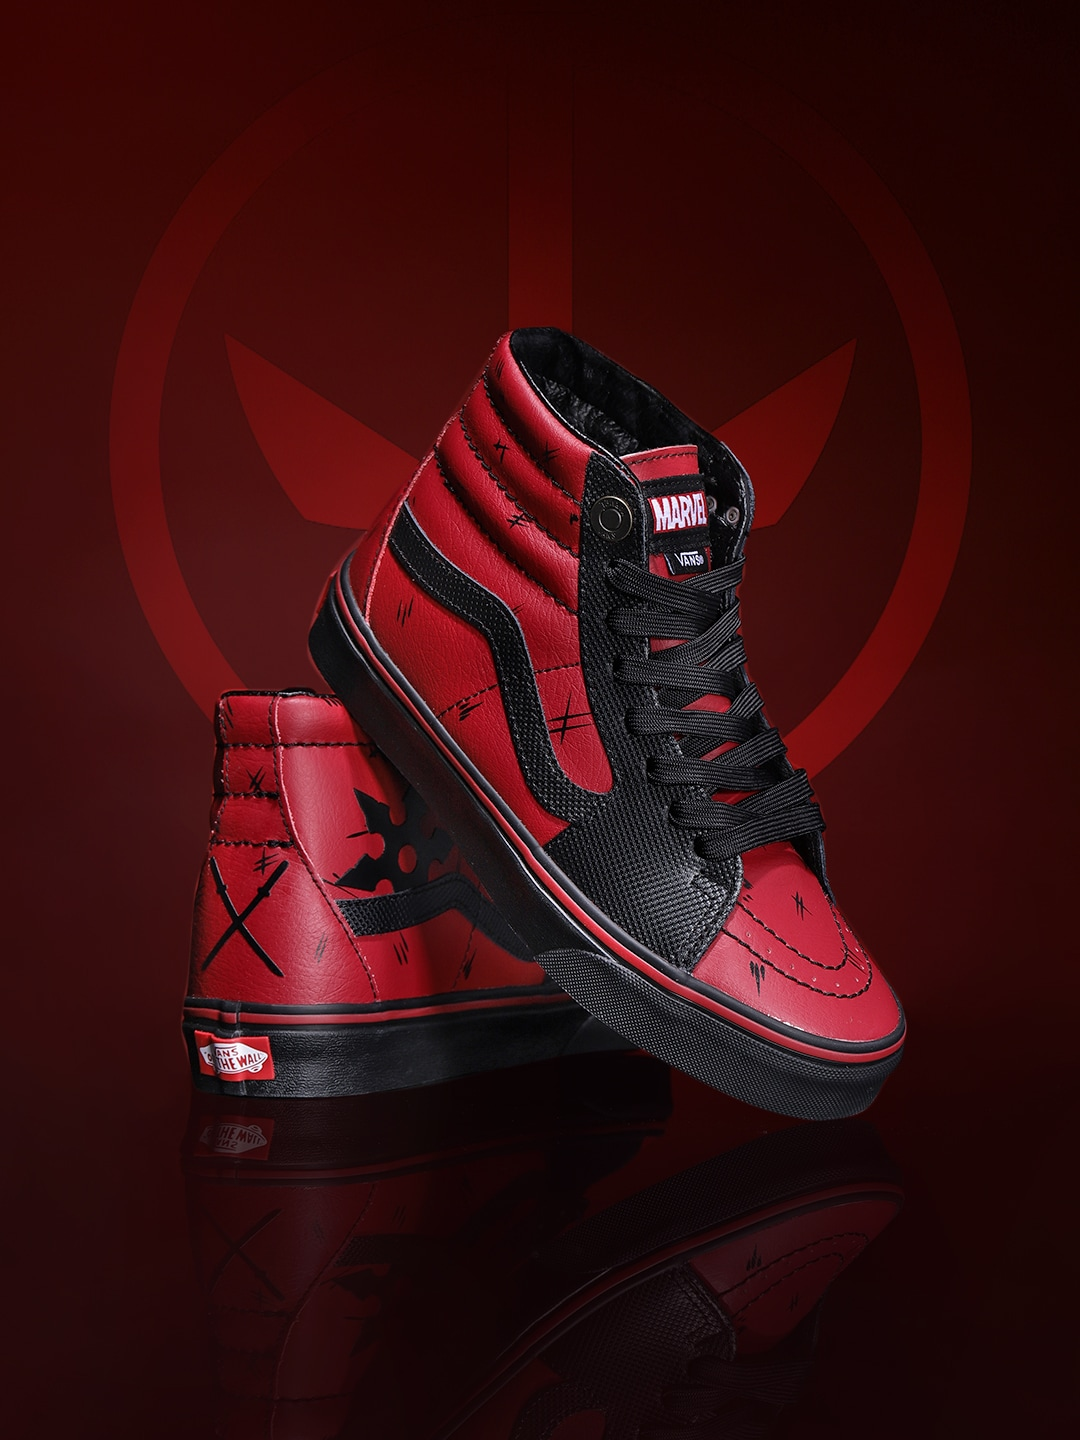 Vans Unisex Maroon & Black Marvel Deadpool Mid-Top Leather Sneakers